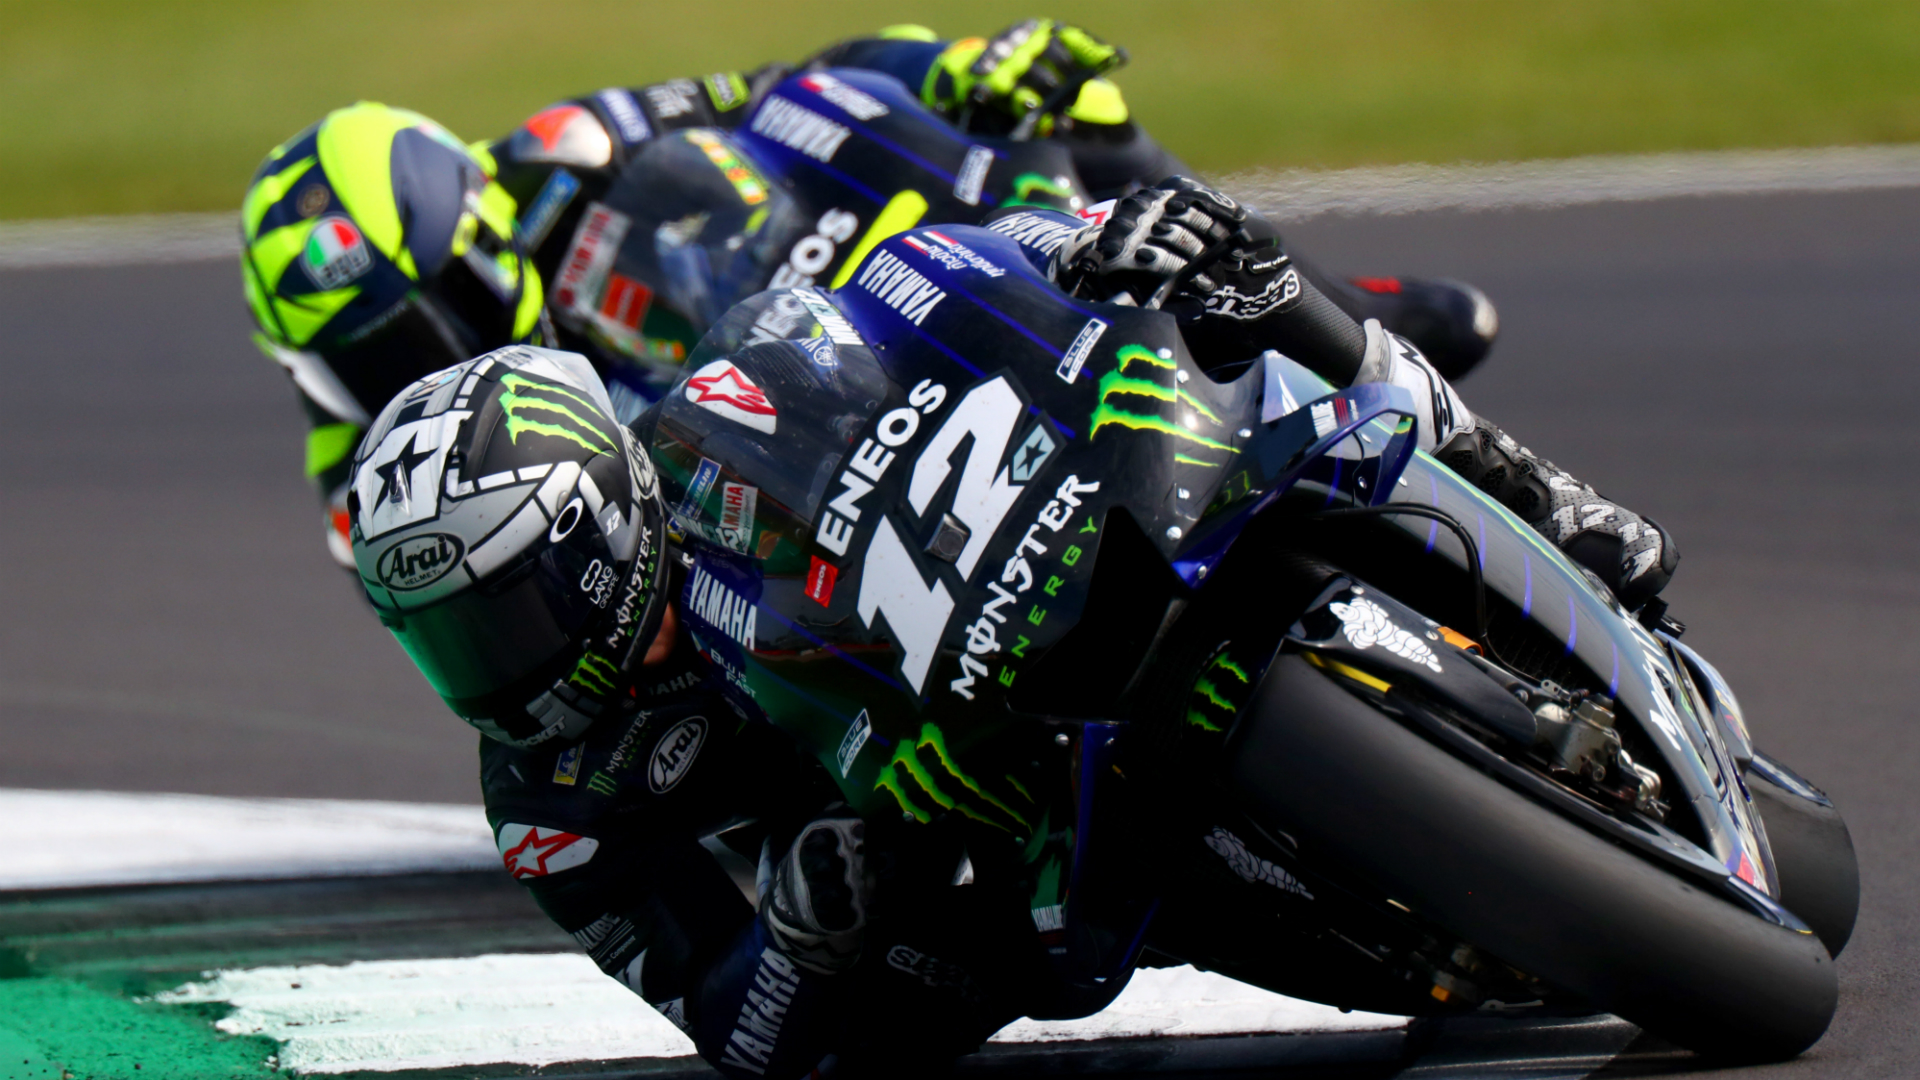 MotoGP Raceweek: Rossi hopes for happy homecoming after strong Yamaha tests